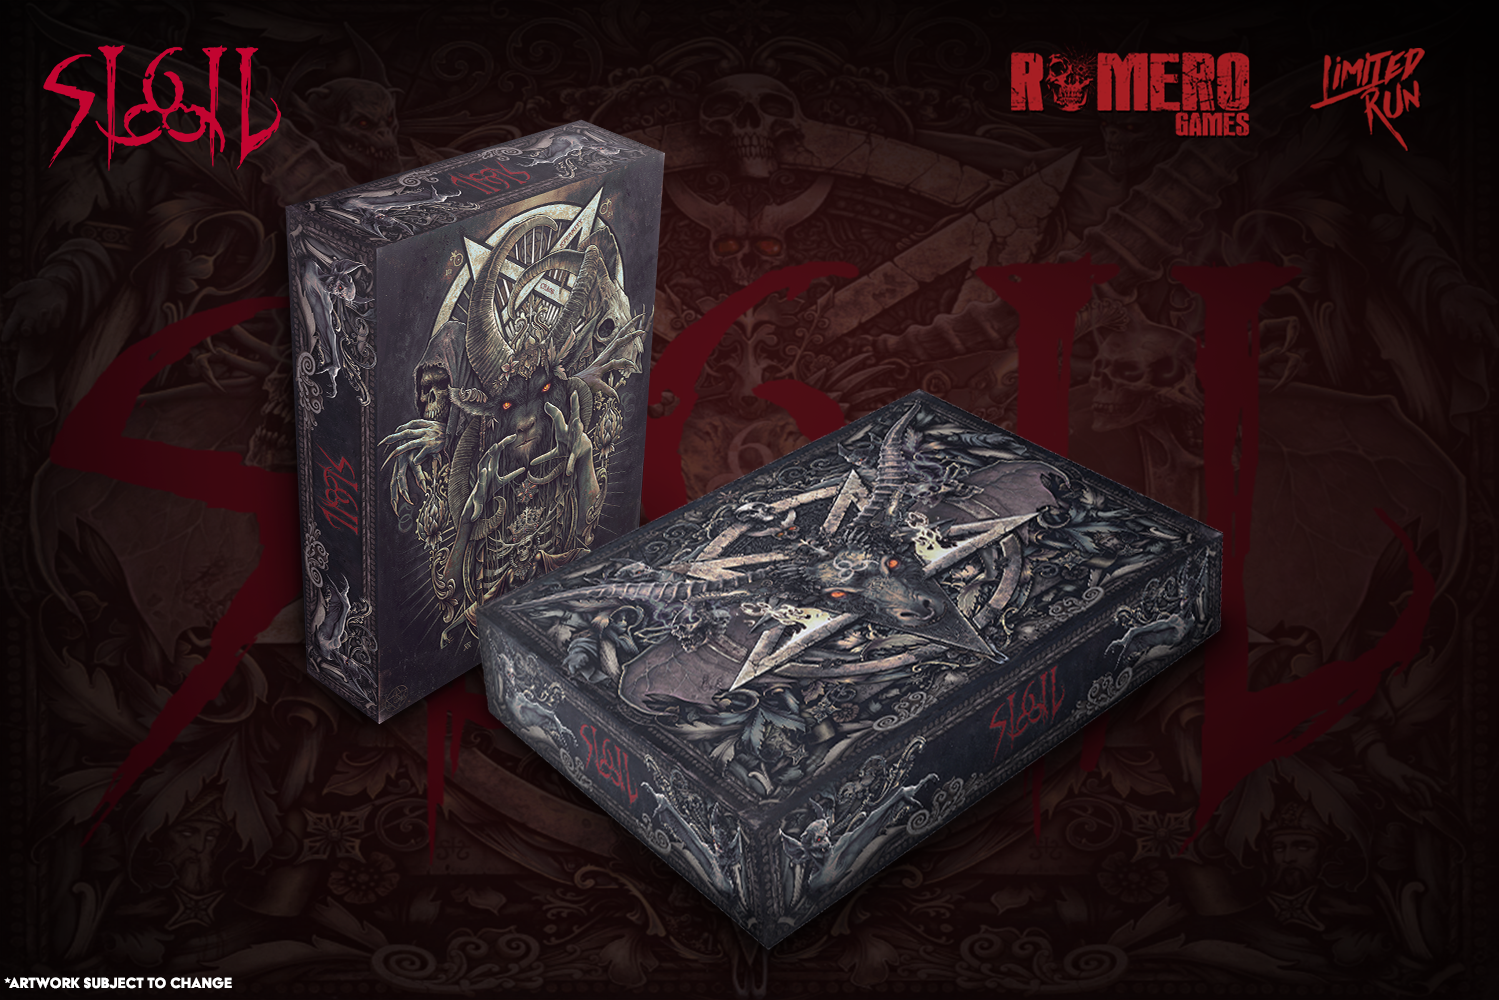 The Beast Box of SIGIL from Limited Run.